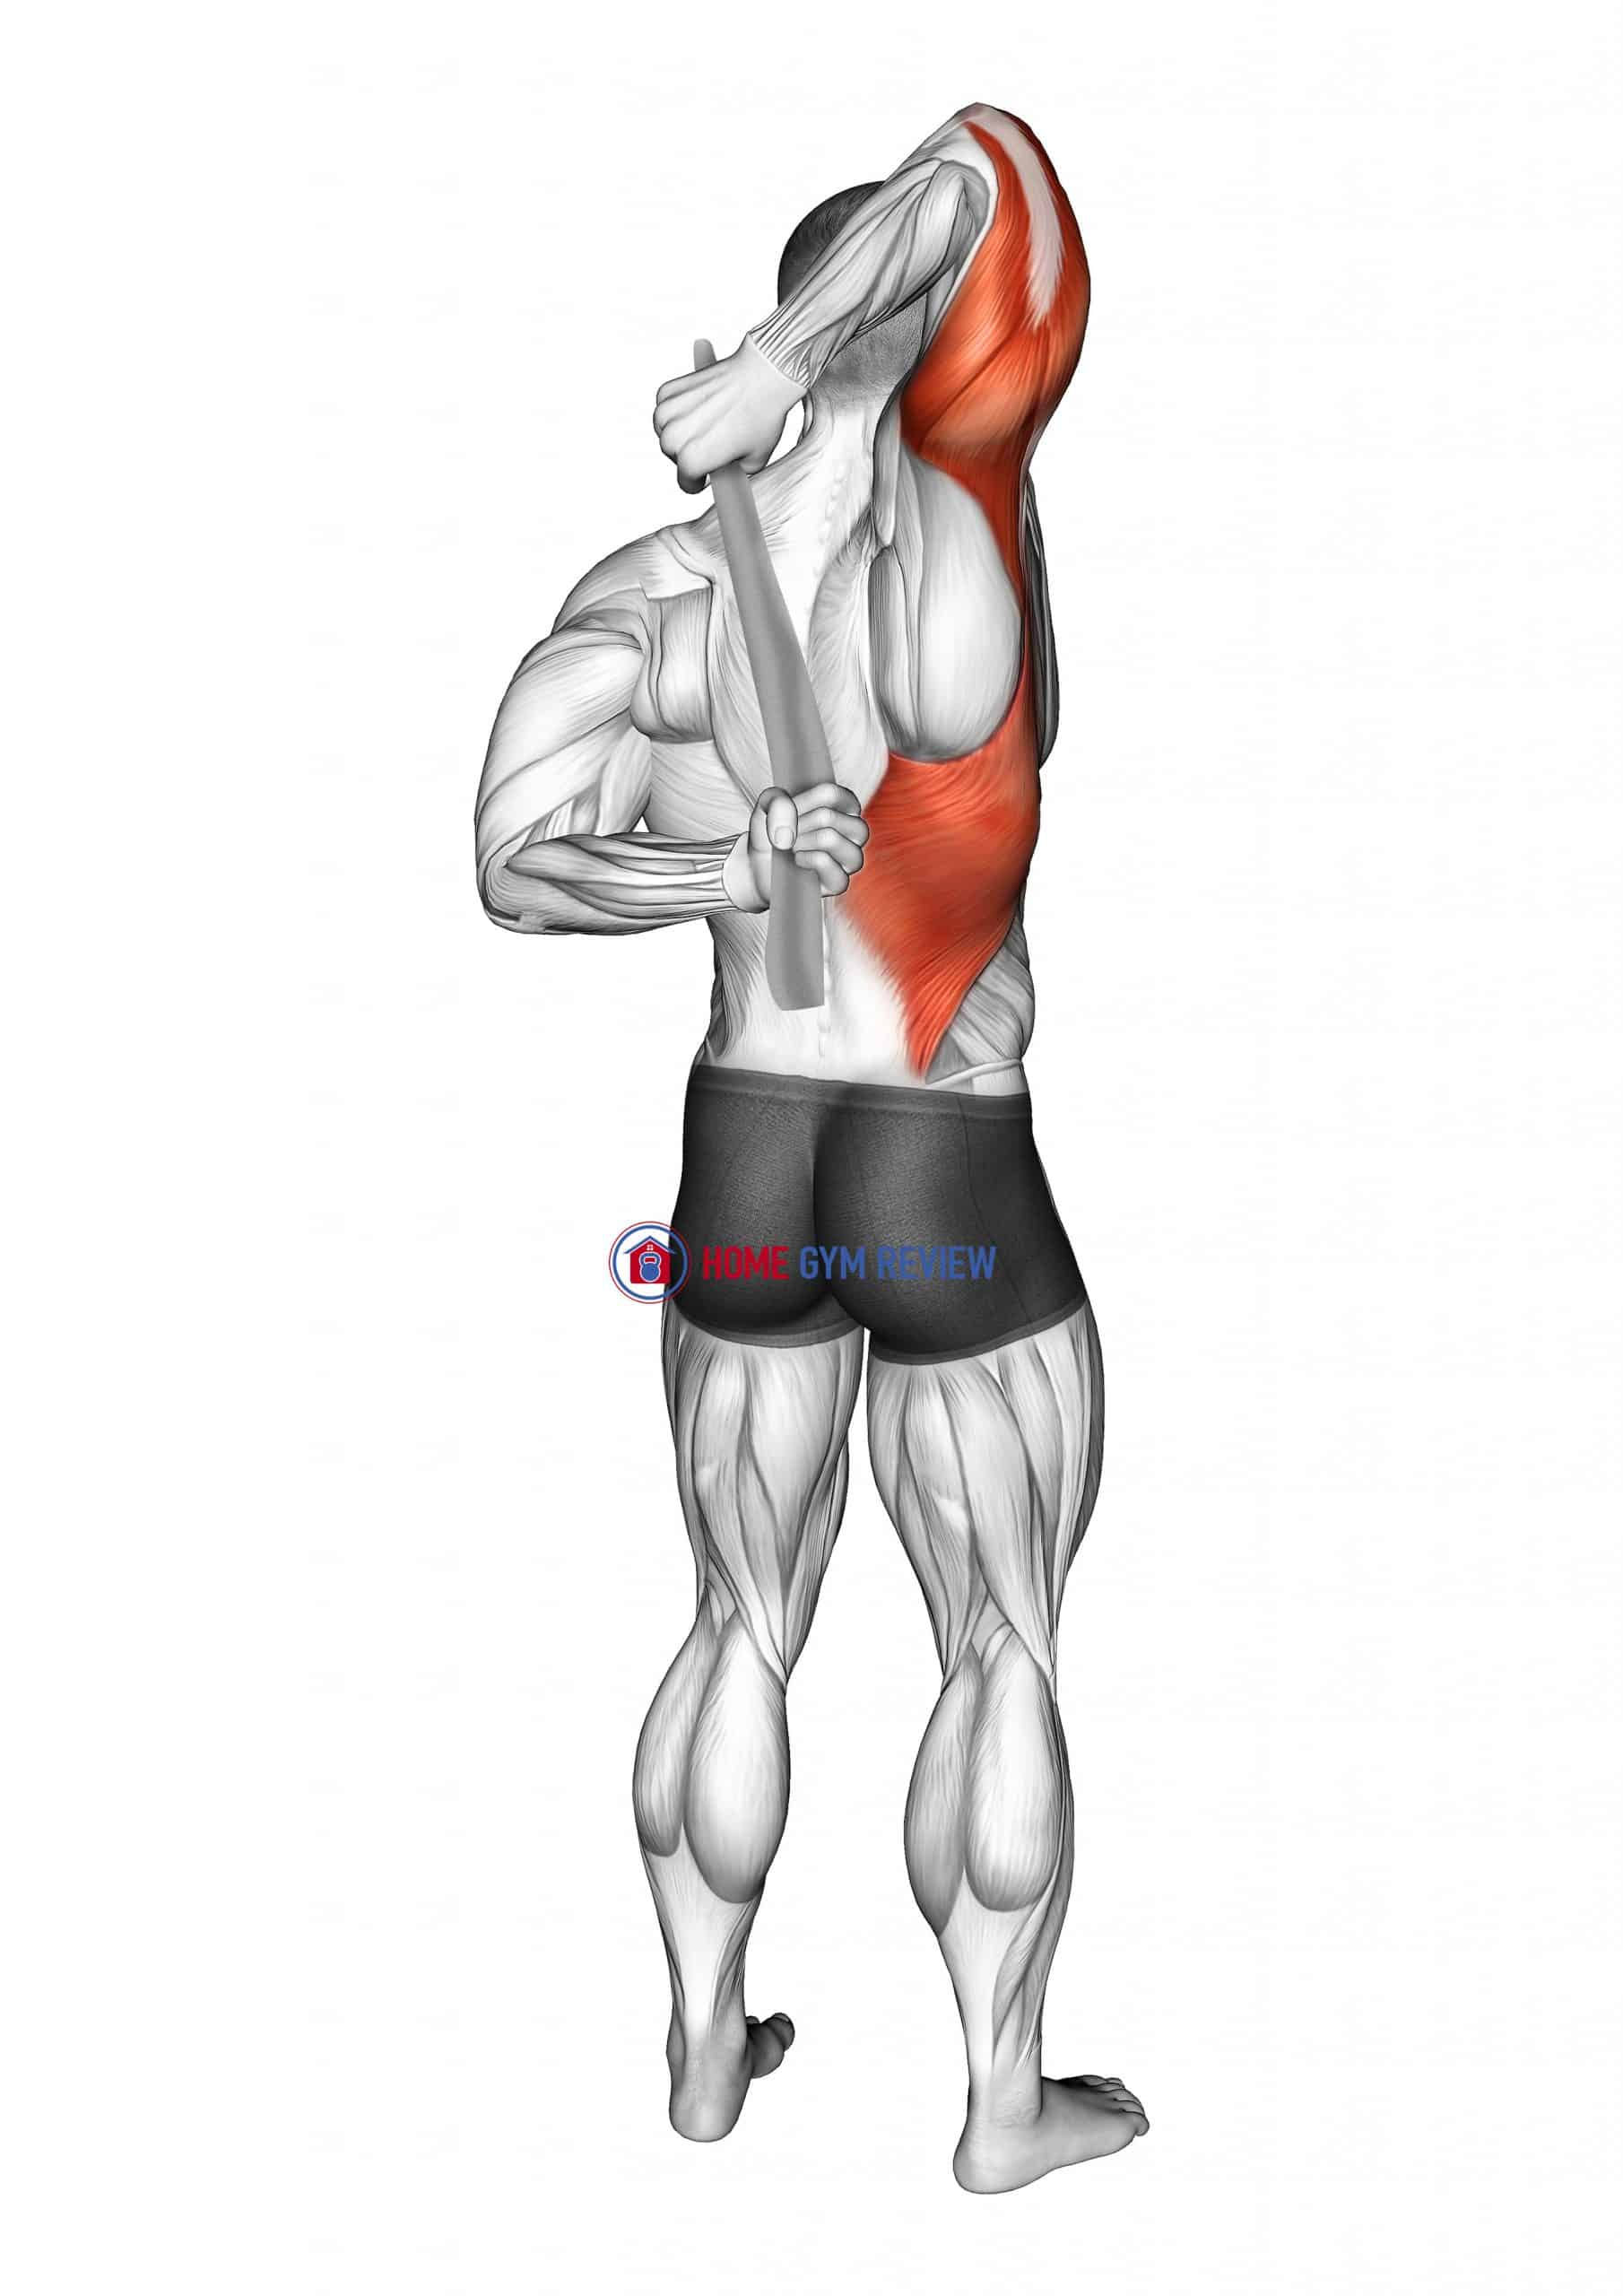 Shoulder Stretch With Towel Behind The Back